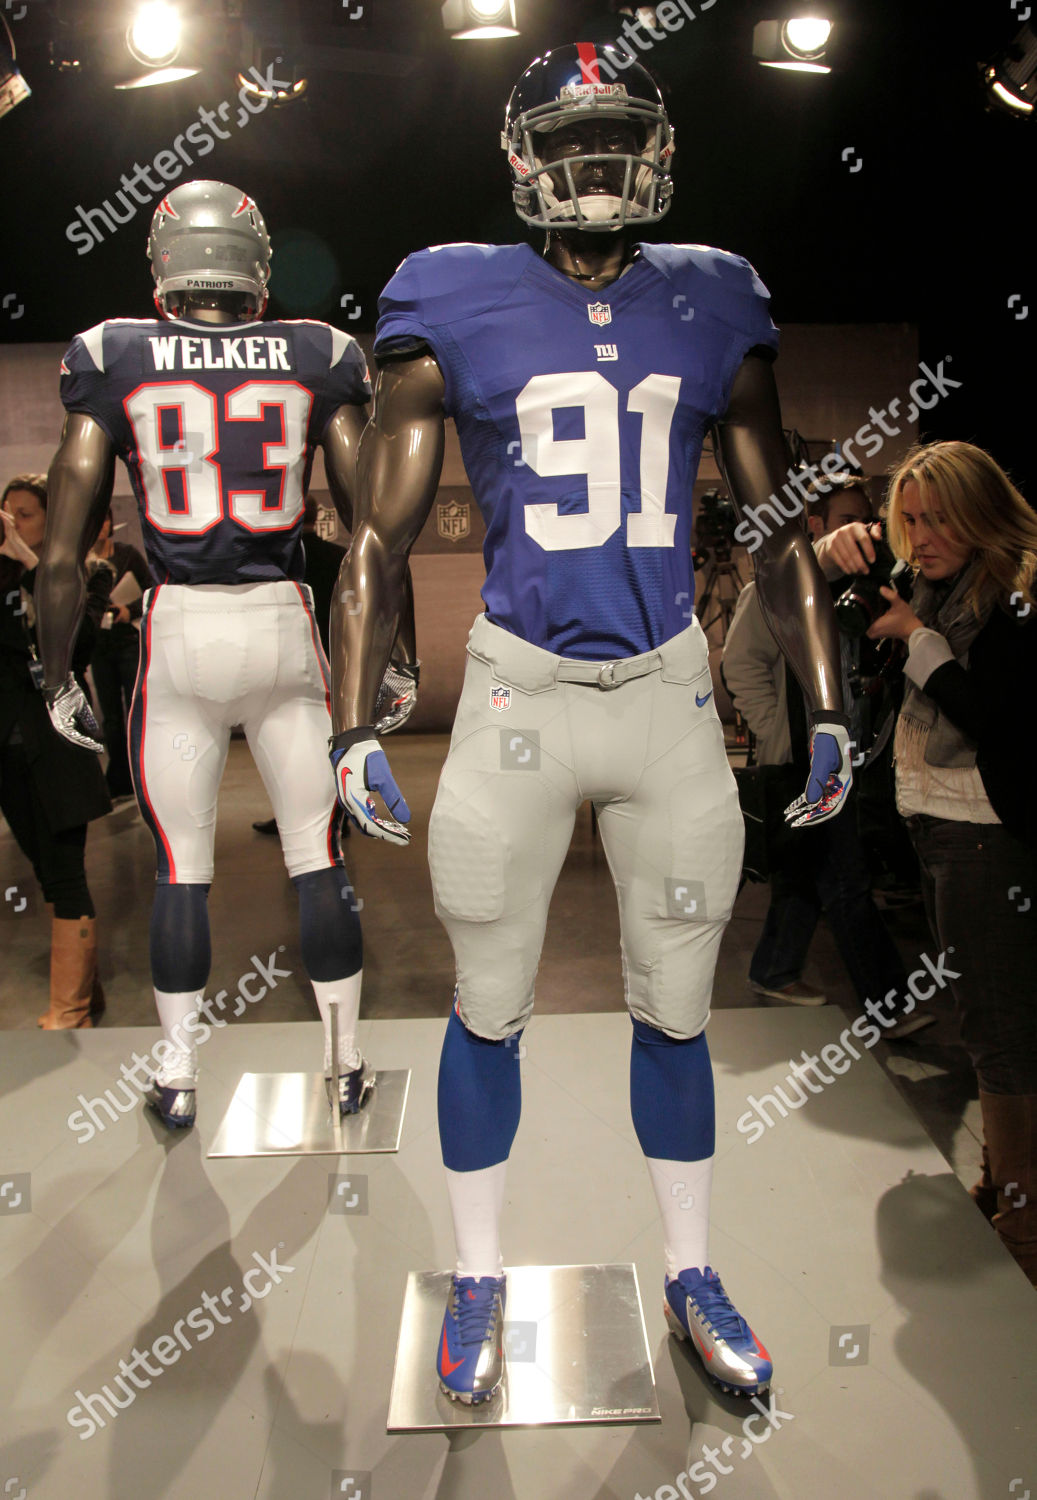 46e05a0b938 NFL Uniforms Football, New York, USA Stock Image by Seth Wenig for editorial  use, Apr 3, 2012